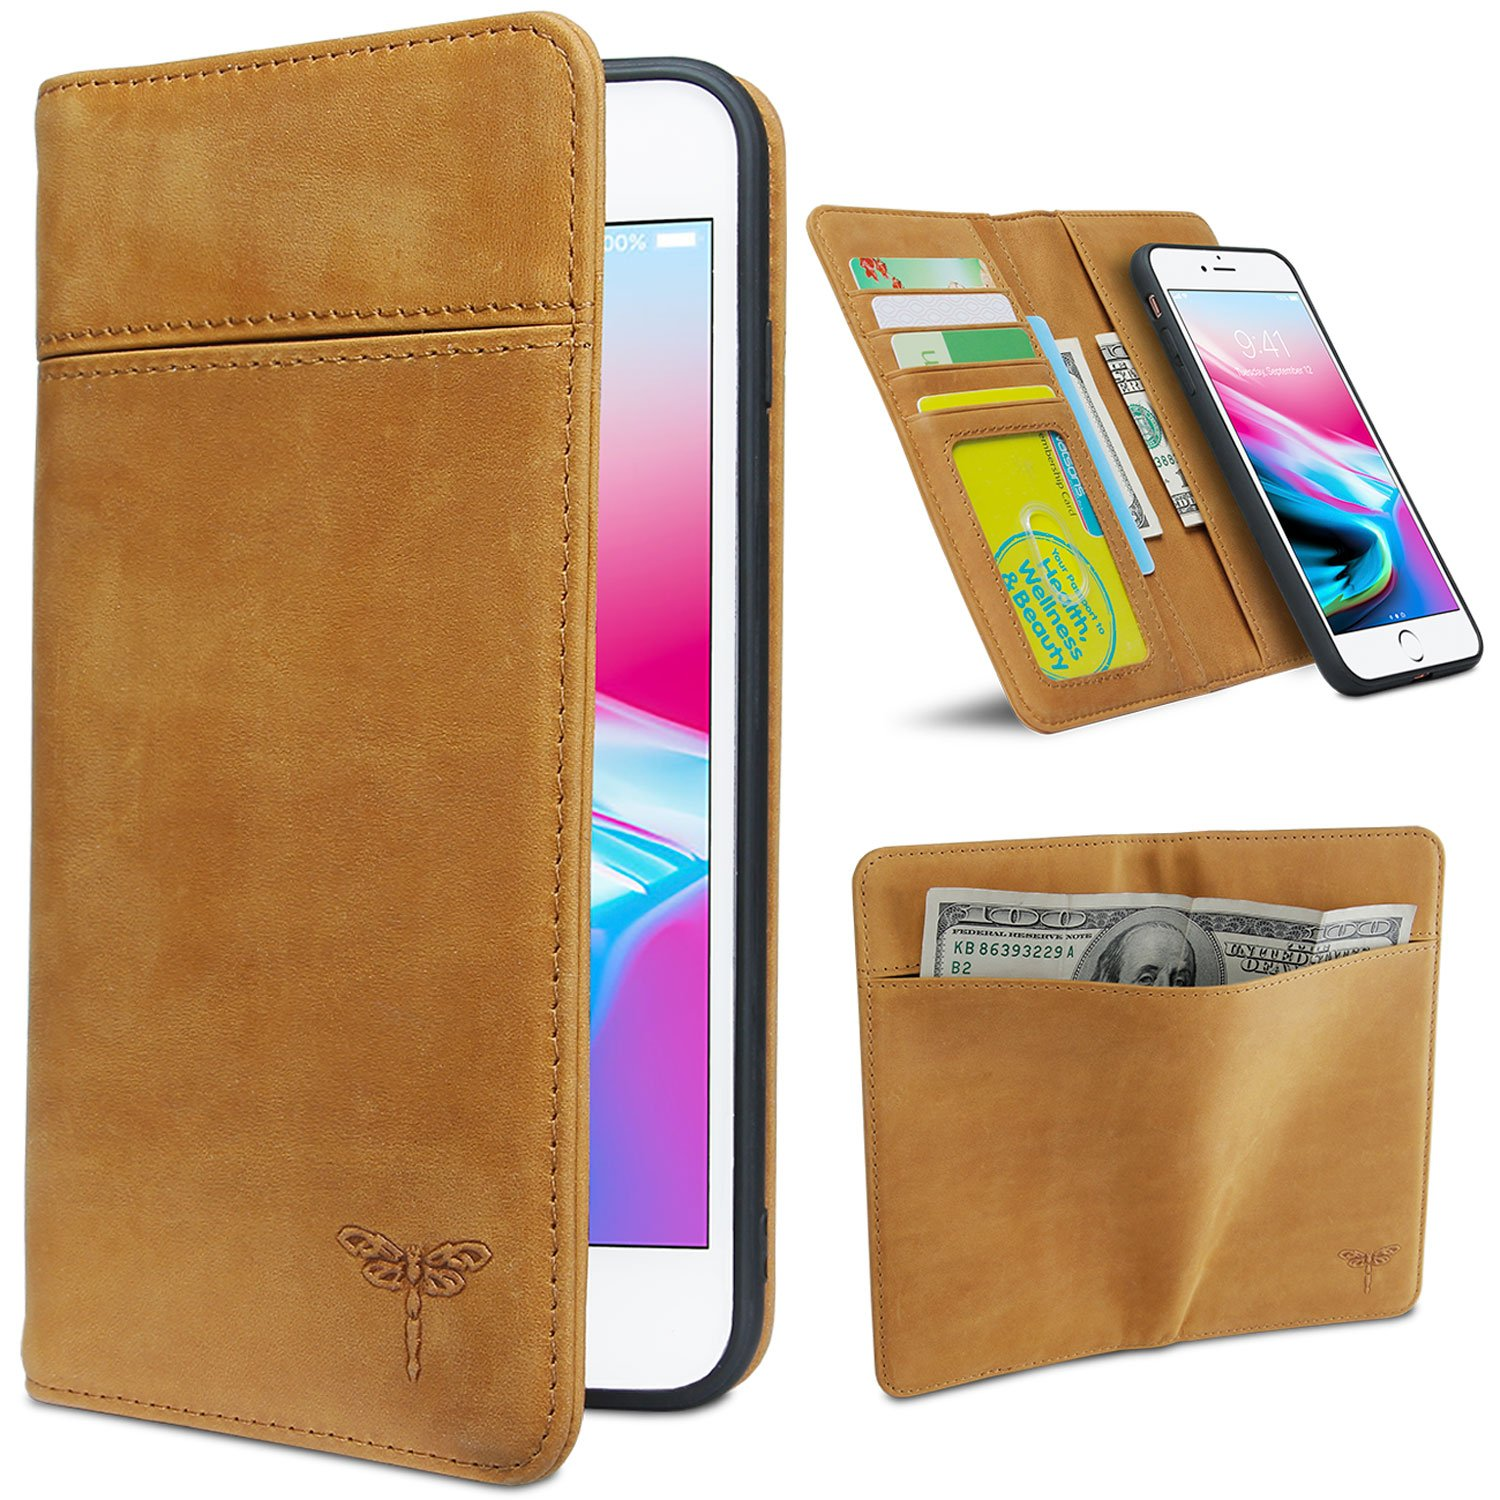 Compatible with iPhone 8 Plus Case, iPhone 7 Plus Case Wallet, FRIFUN Magnetic Detachable Case iPhone 8 Plus Real Cow Leather Handmade Cover, Flip Case for iPhone 7 Plus /8 Plus Brown